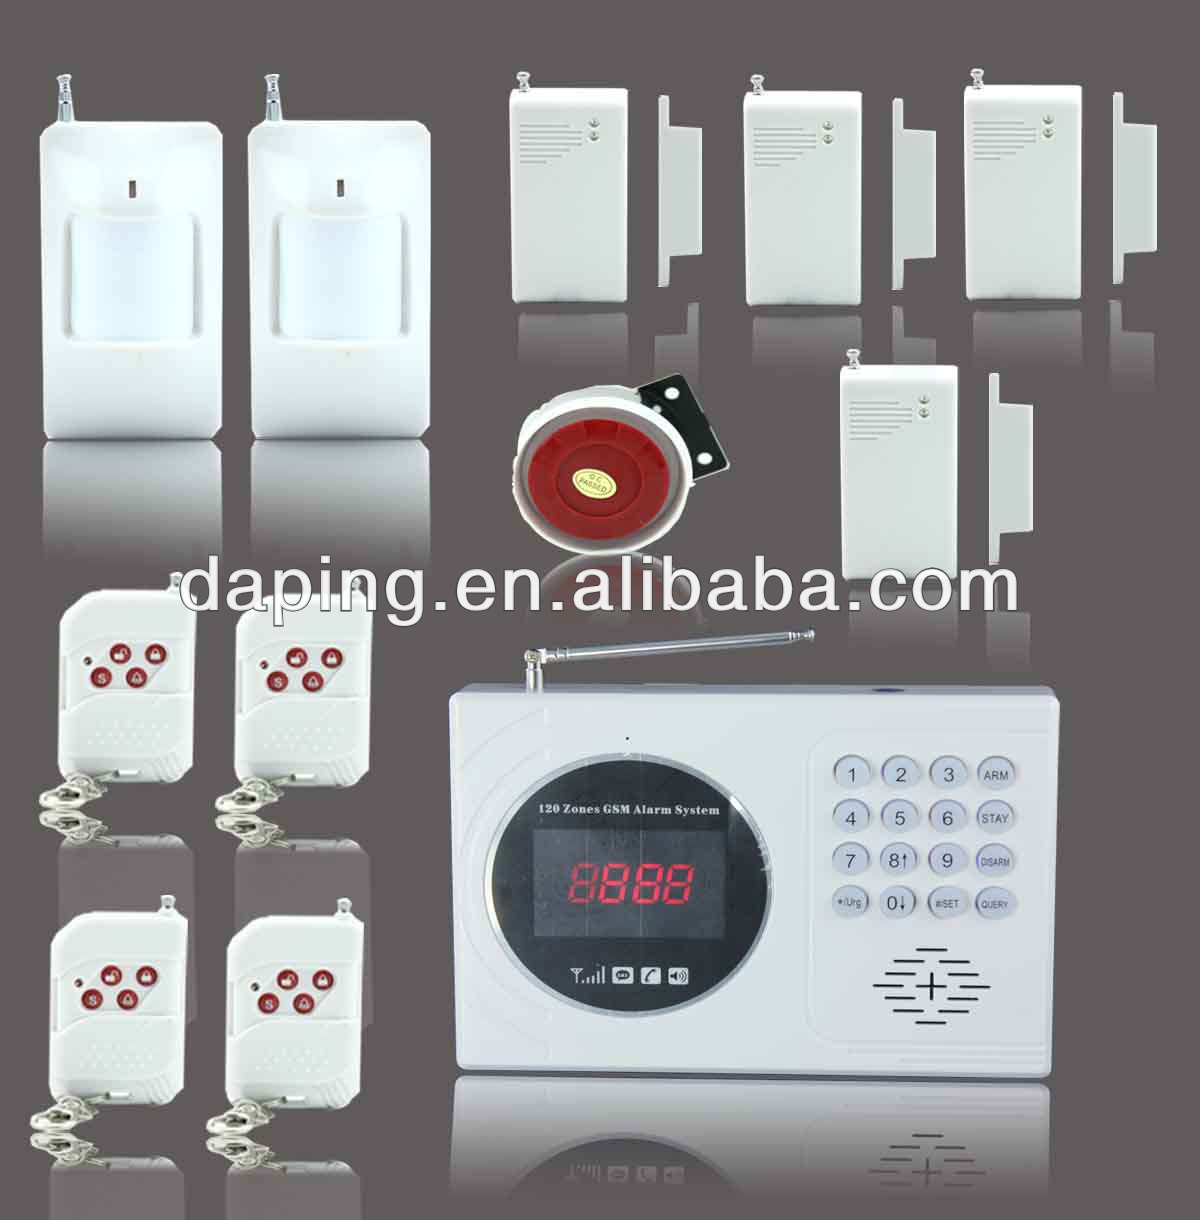 Wired intruder alarm wired intruder alarm suppliers and wired intruder alarm wired intruder alarm suppliers and manufacturers at alibaba solutioingenieria Images